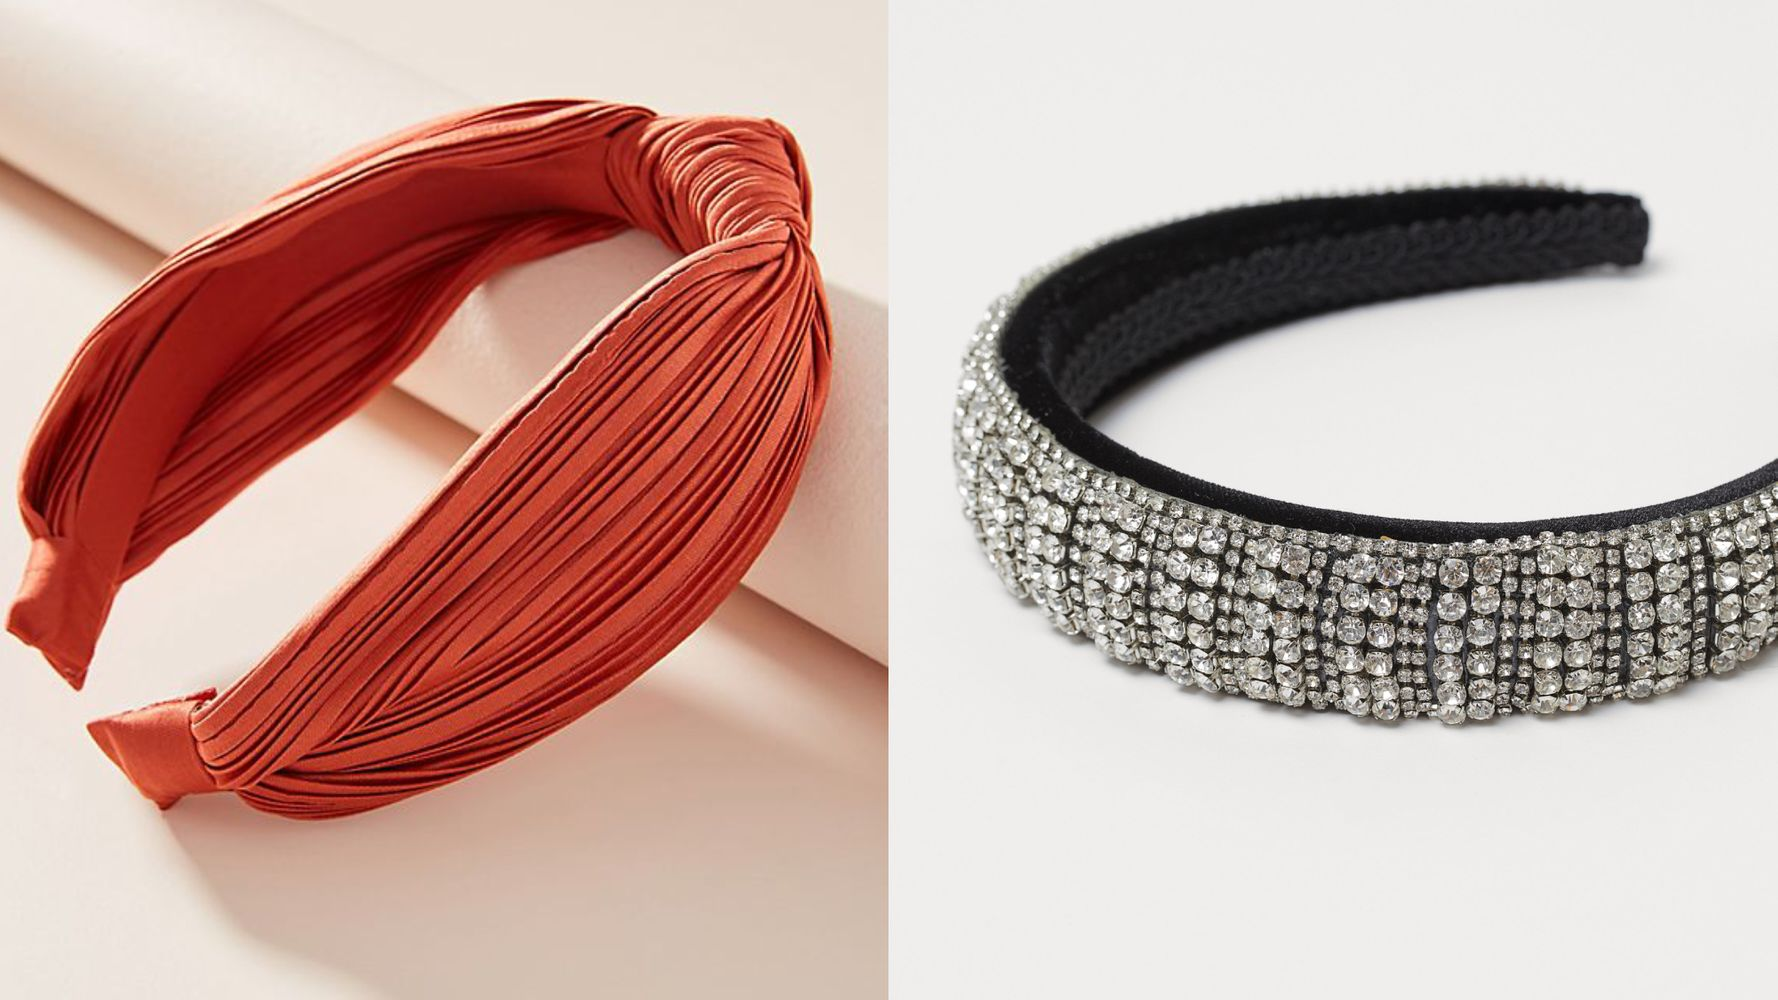 10 Must-Have Headbands To Complete Your Holiday Look